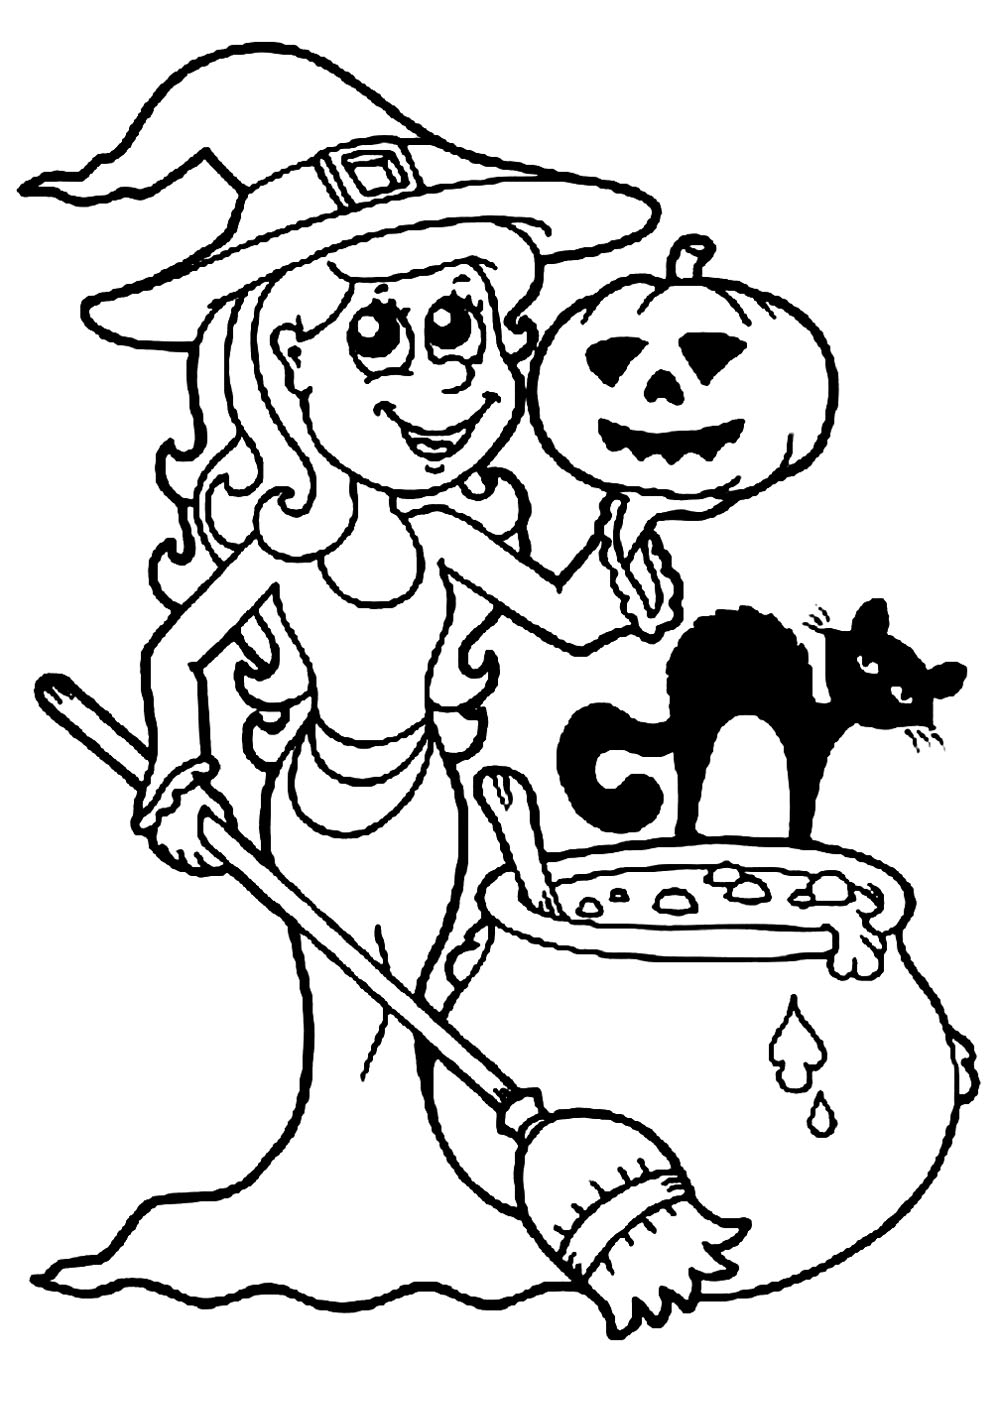 Halloween free to color for kids - Halloween Kids Coloring ...